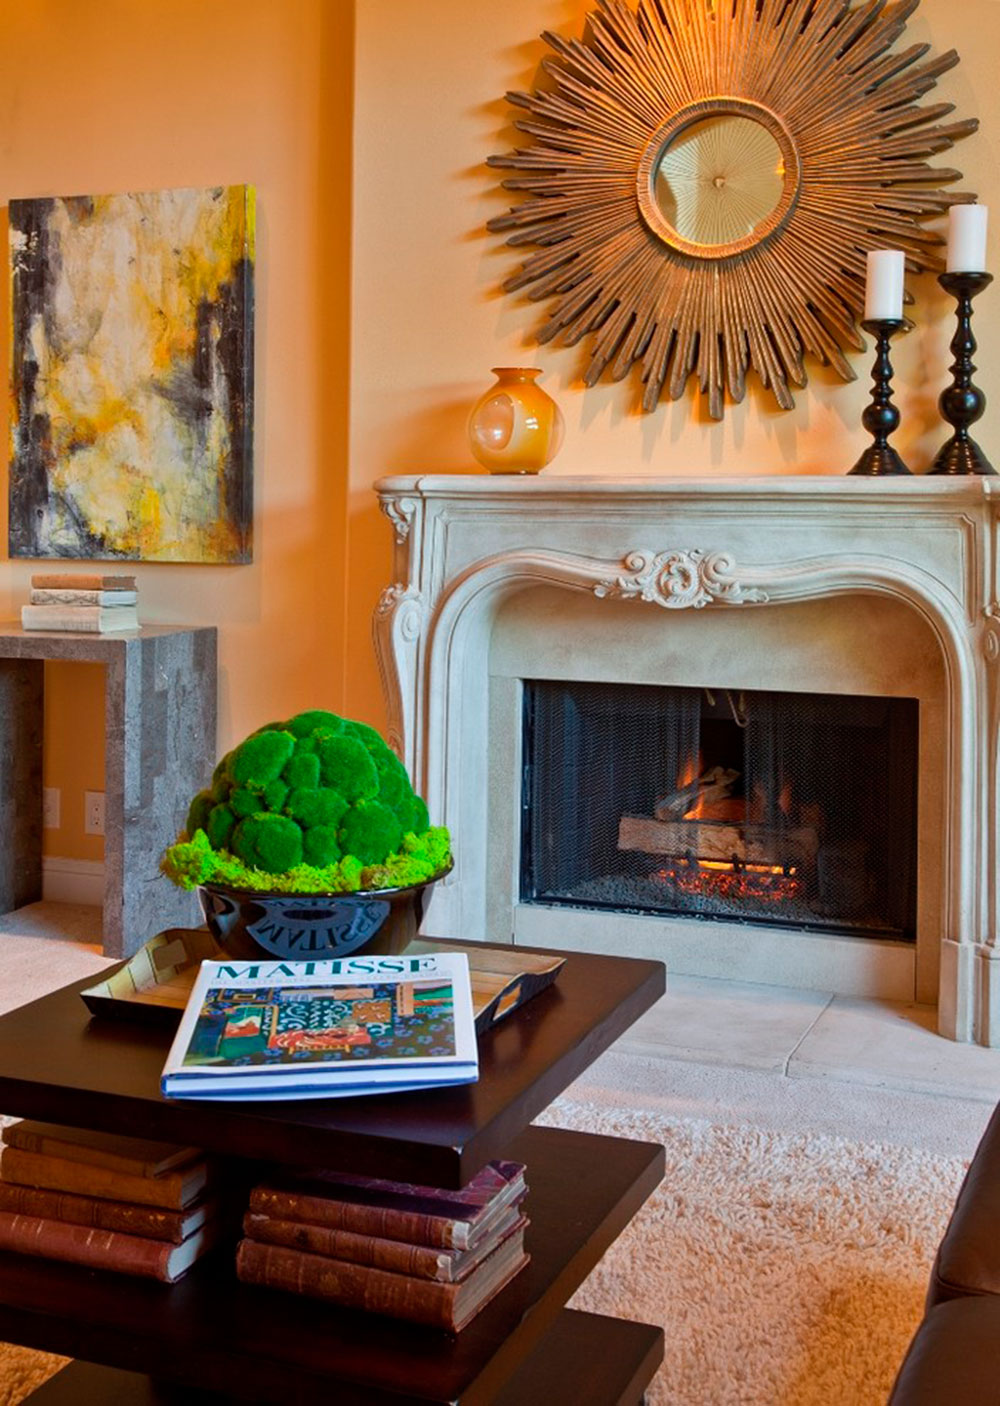 Fireplace Mantel Decorating Ideas For A Cozy Home Fireplace Mantel Decorating Ideas For A Cozy Home8 Fireplace